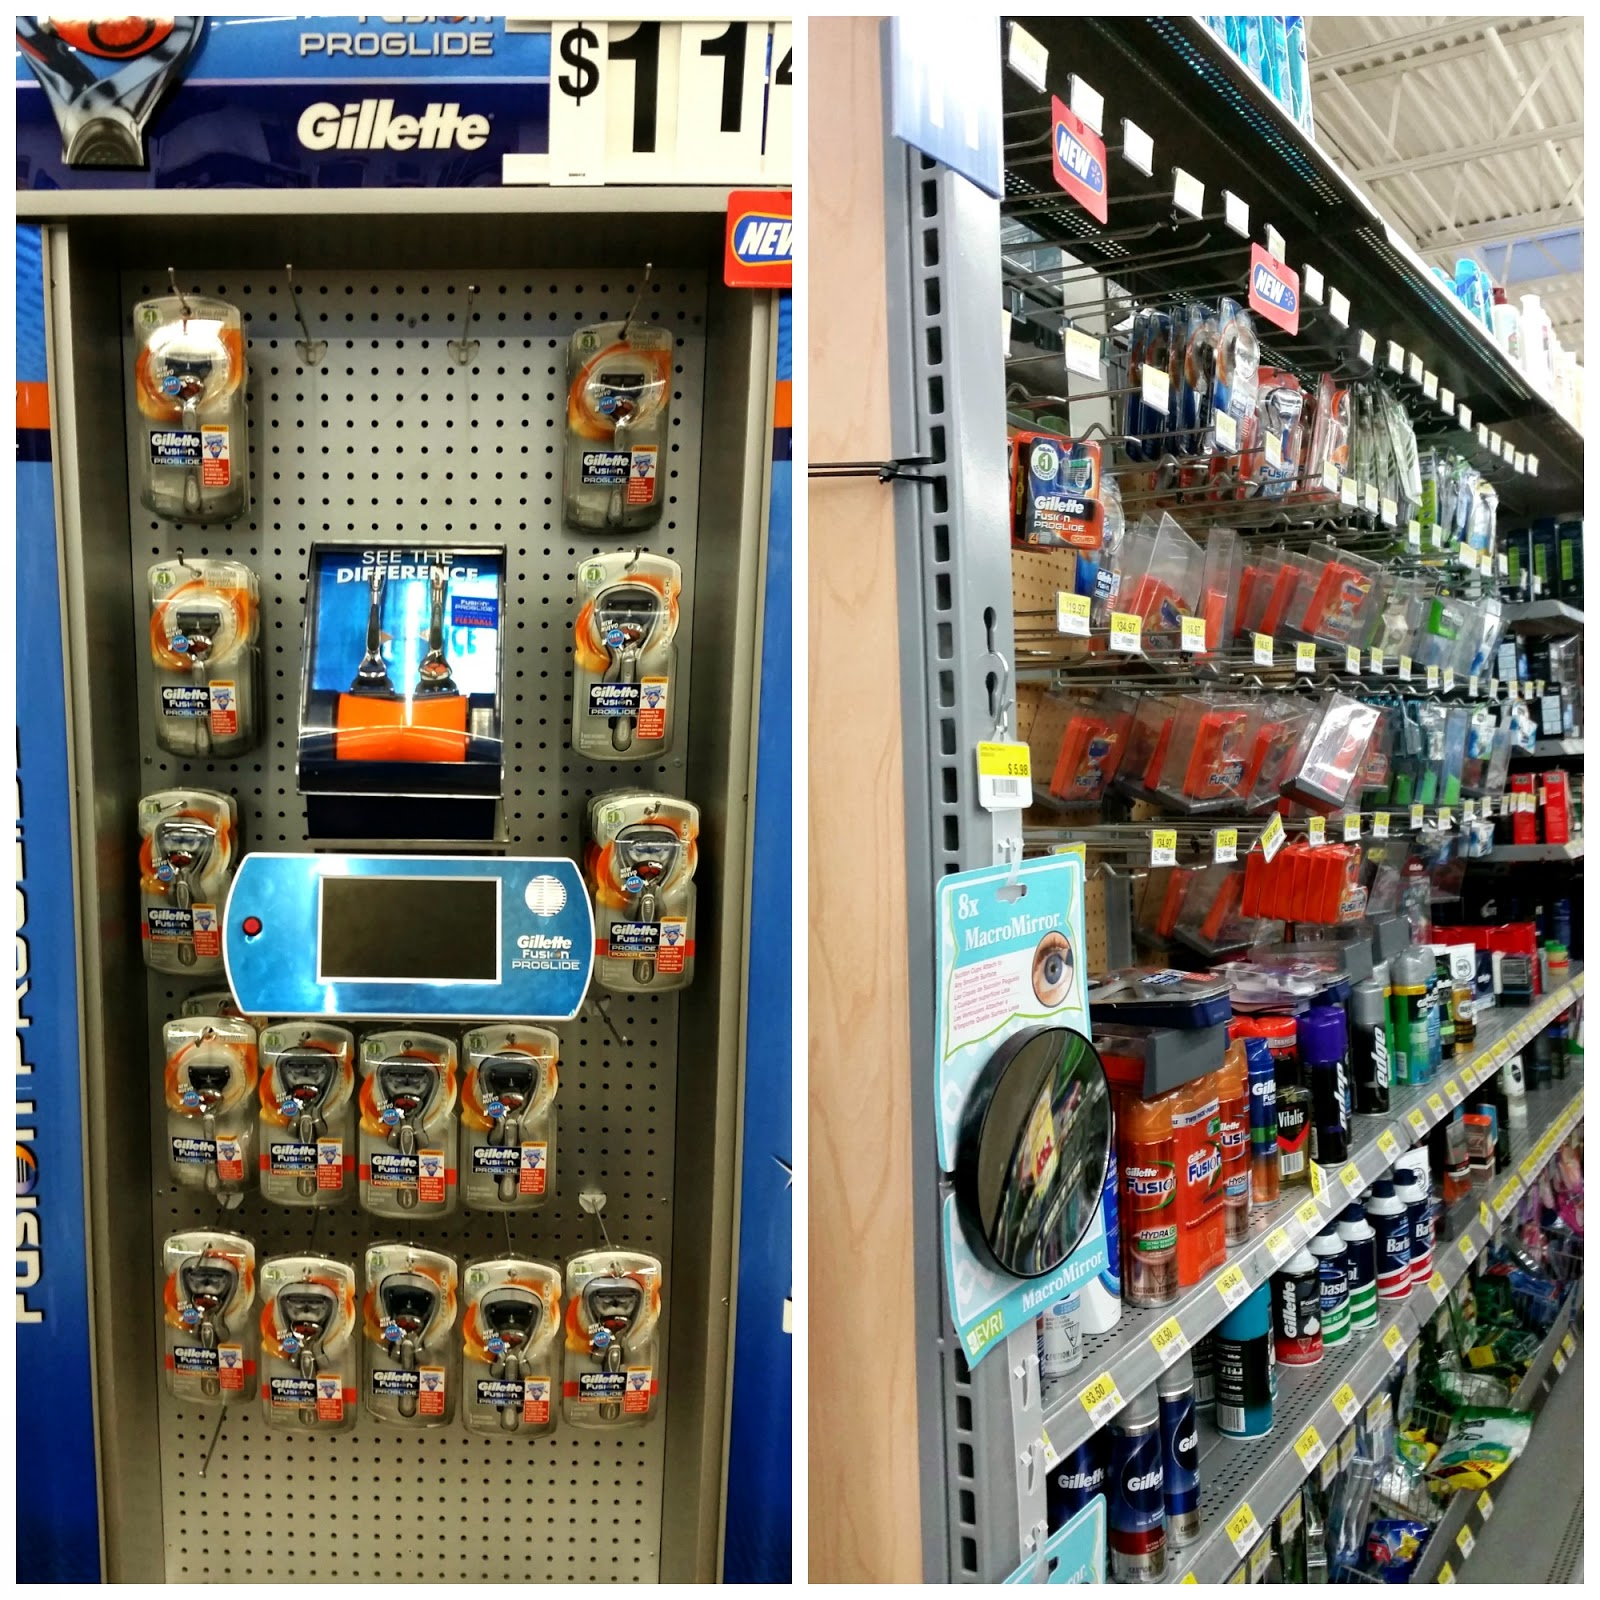 Gillette Flexball Razors available at Walmart #SmoothSummer #shop